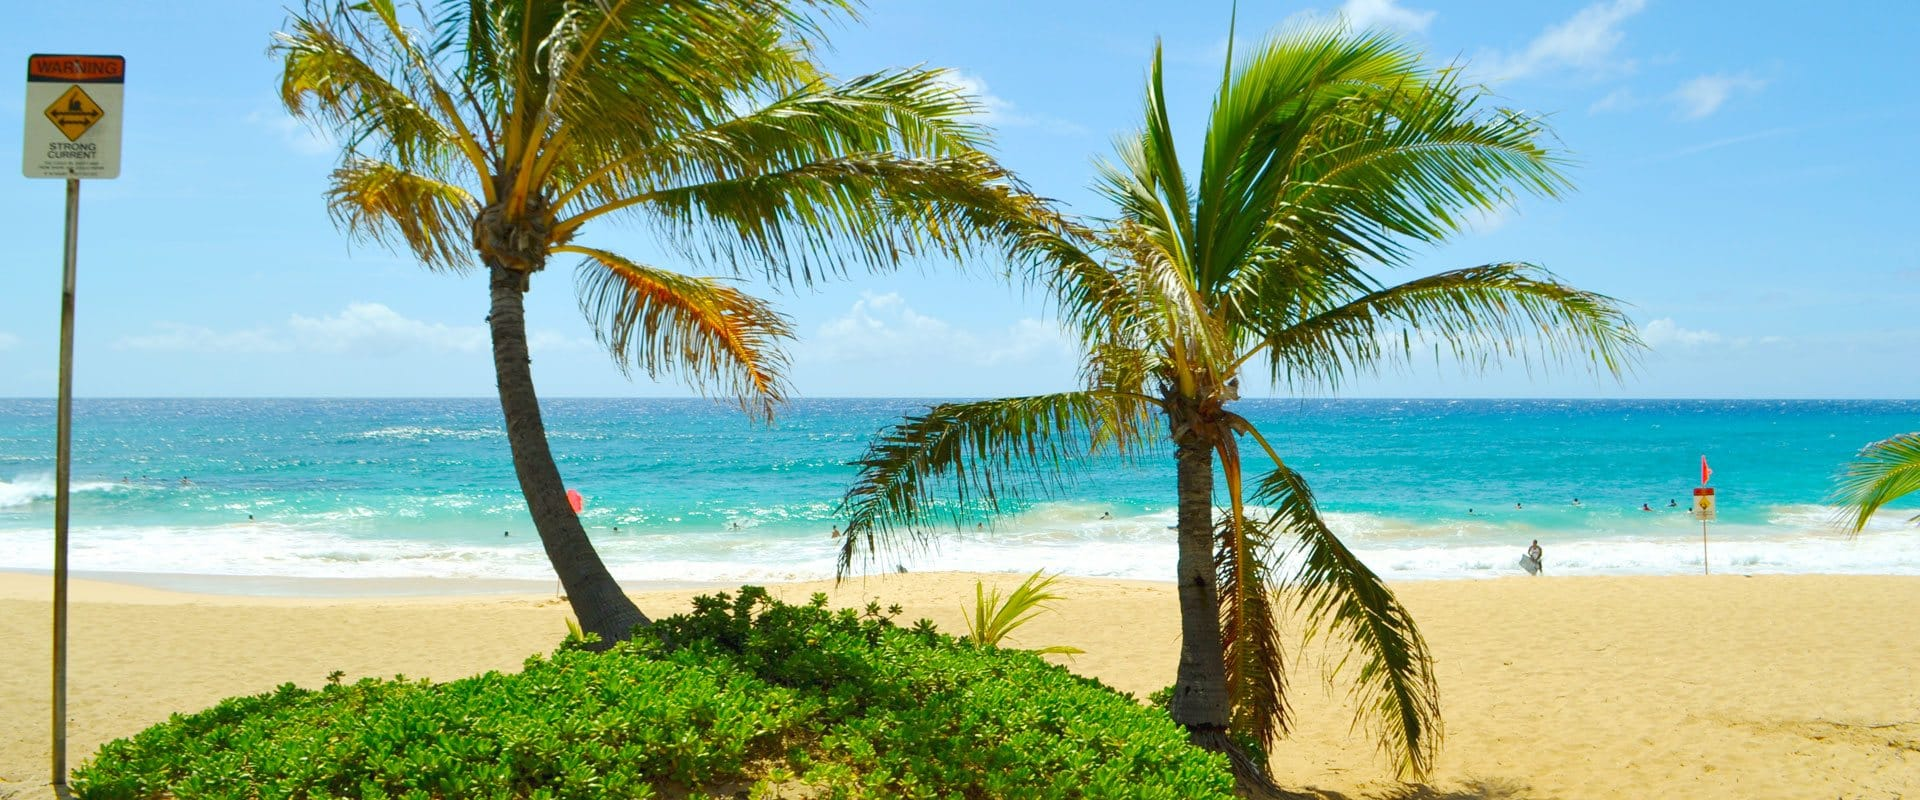 Visit the world famous North Shore beaches